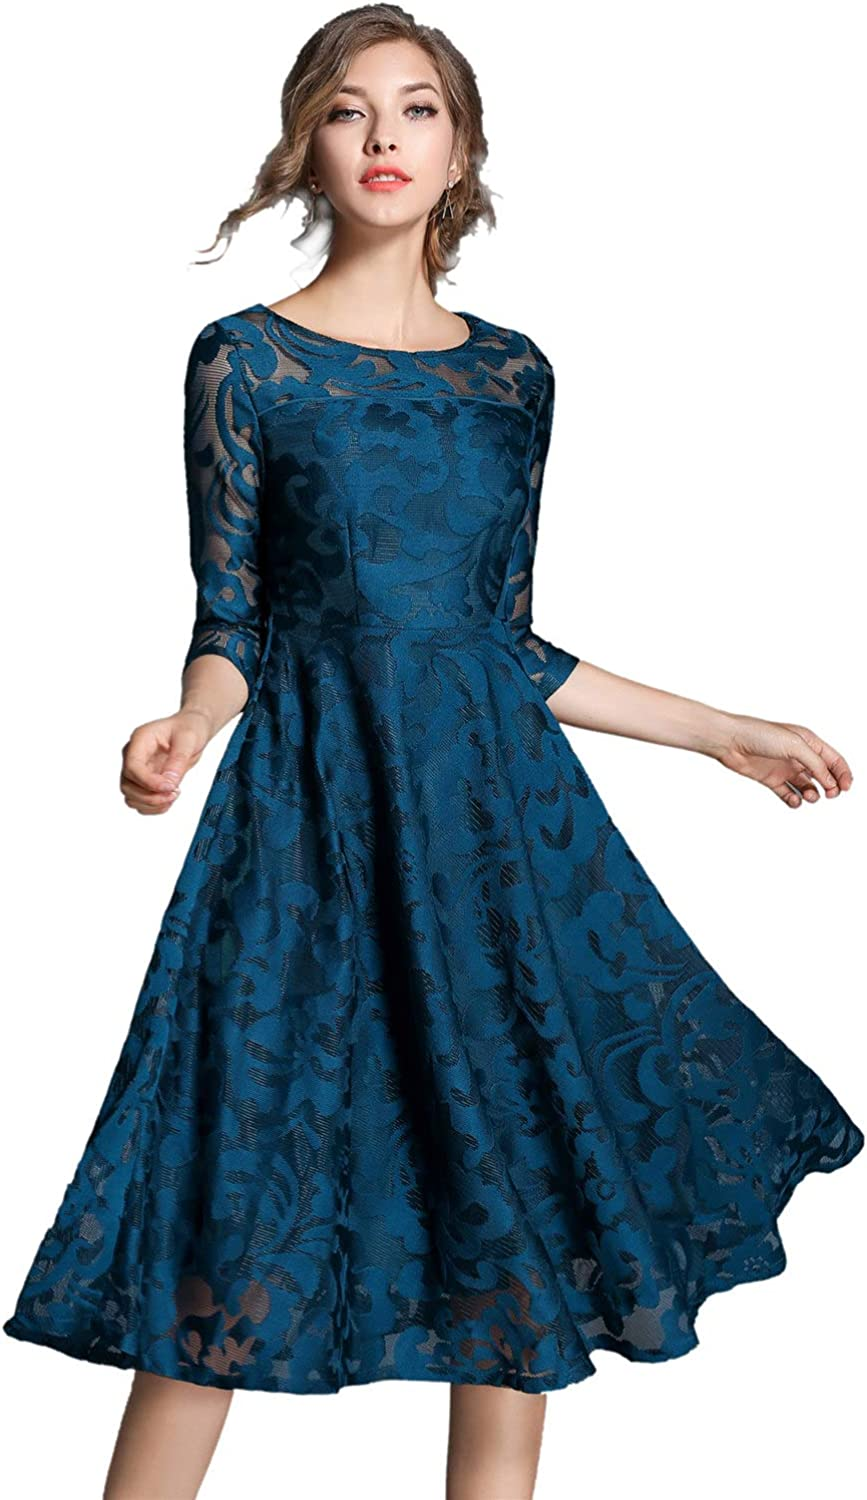 XINUO Women Dresses Fall Vintage Formal Floral Lace A Line Midi Tea Swing Dress Bridesmaid Evening Cocktail Party Dress